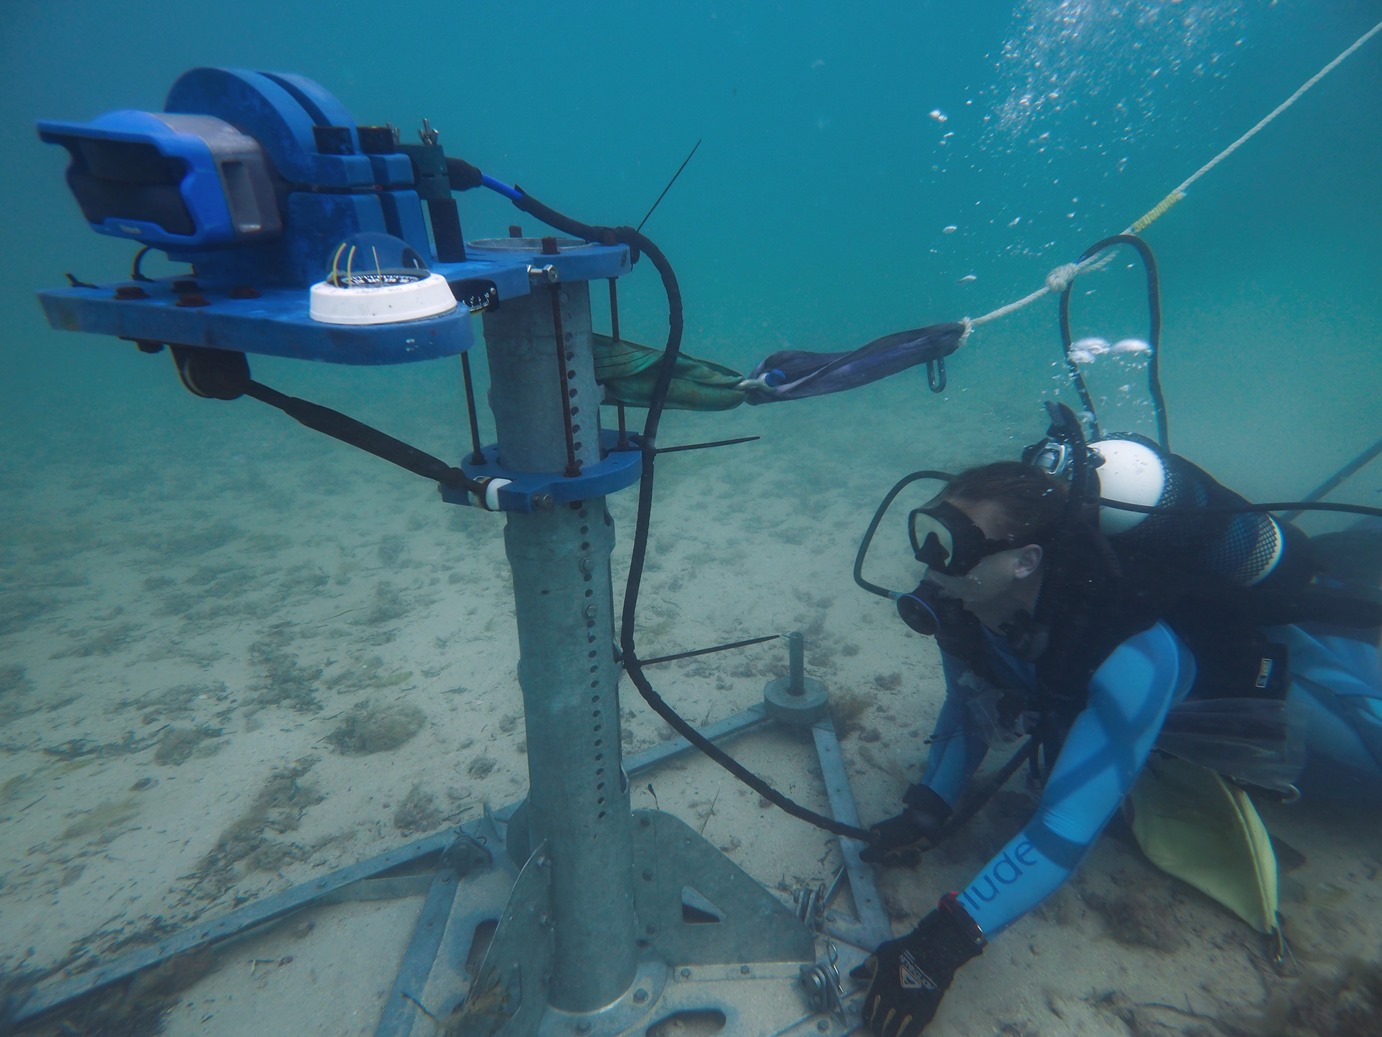 Installing the seabed frame with the sonar transducer on the ocean floor.